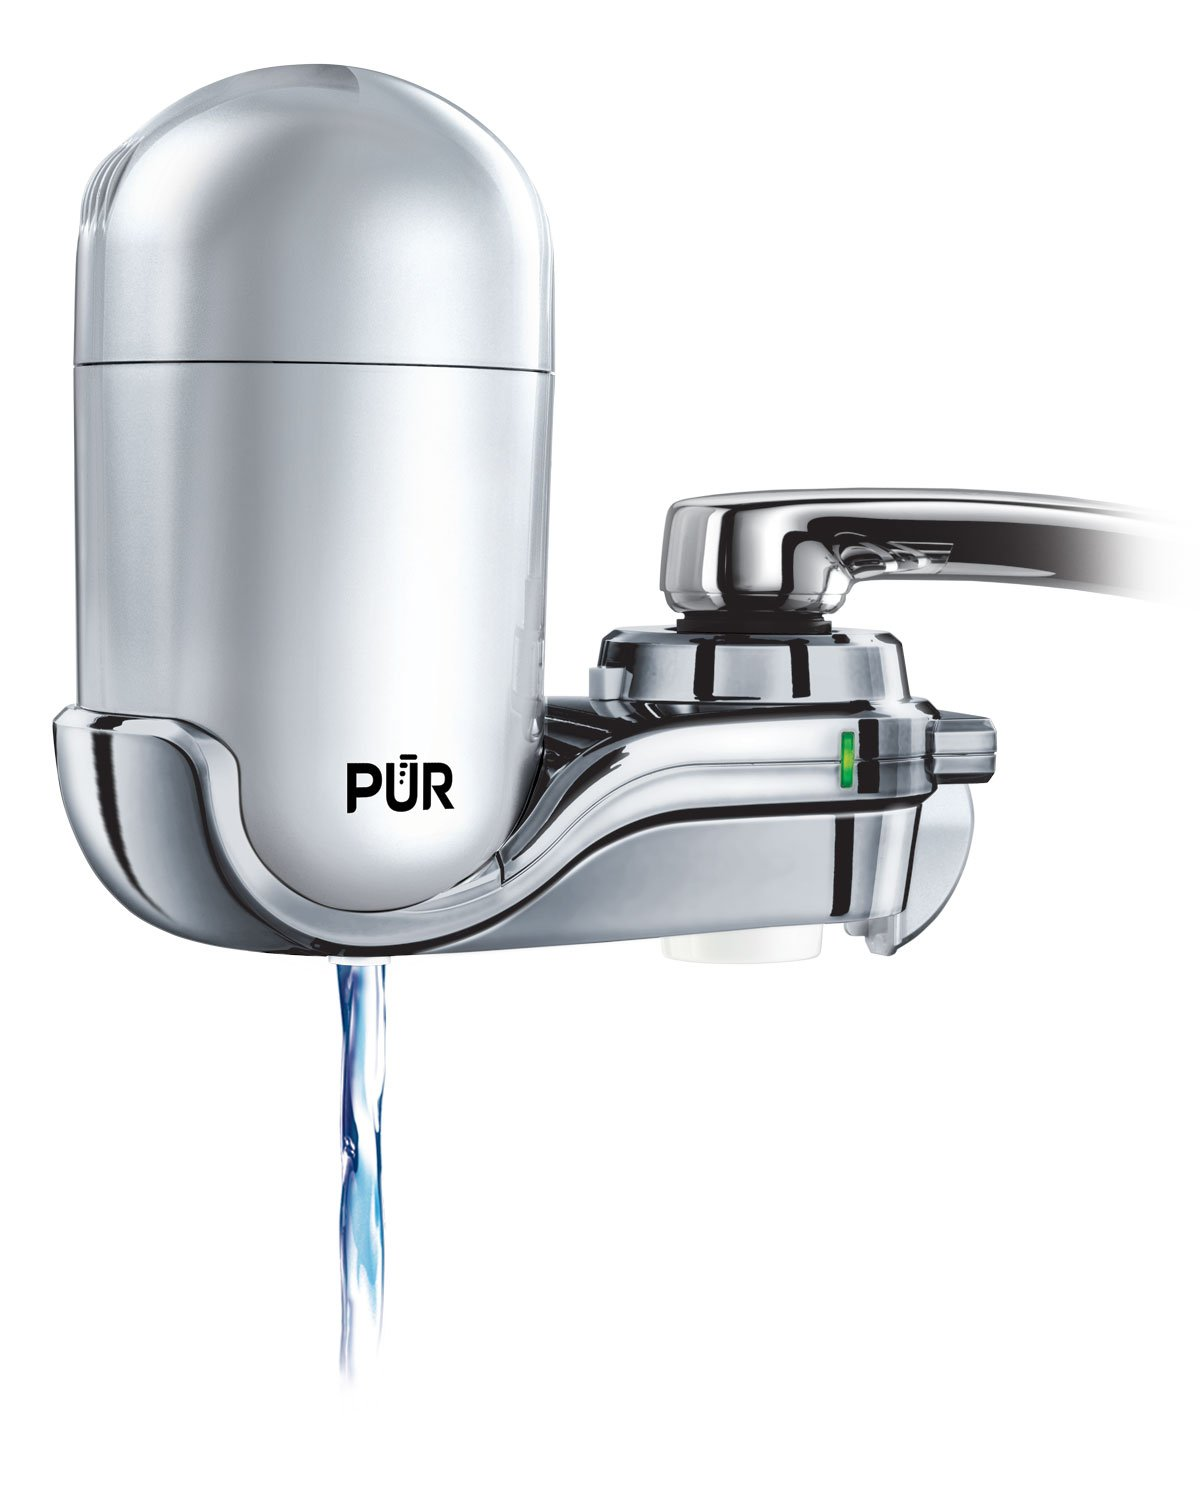 Top 10 Best Faucet Water Filter Reviews in 2020 4